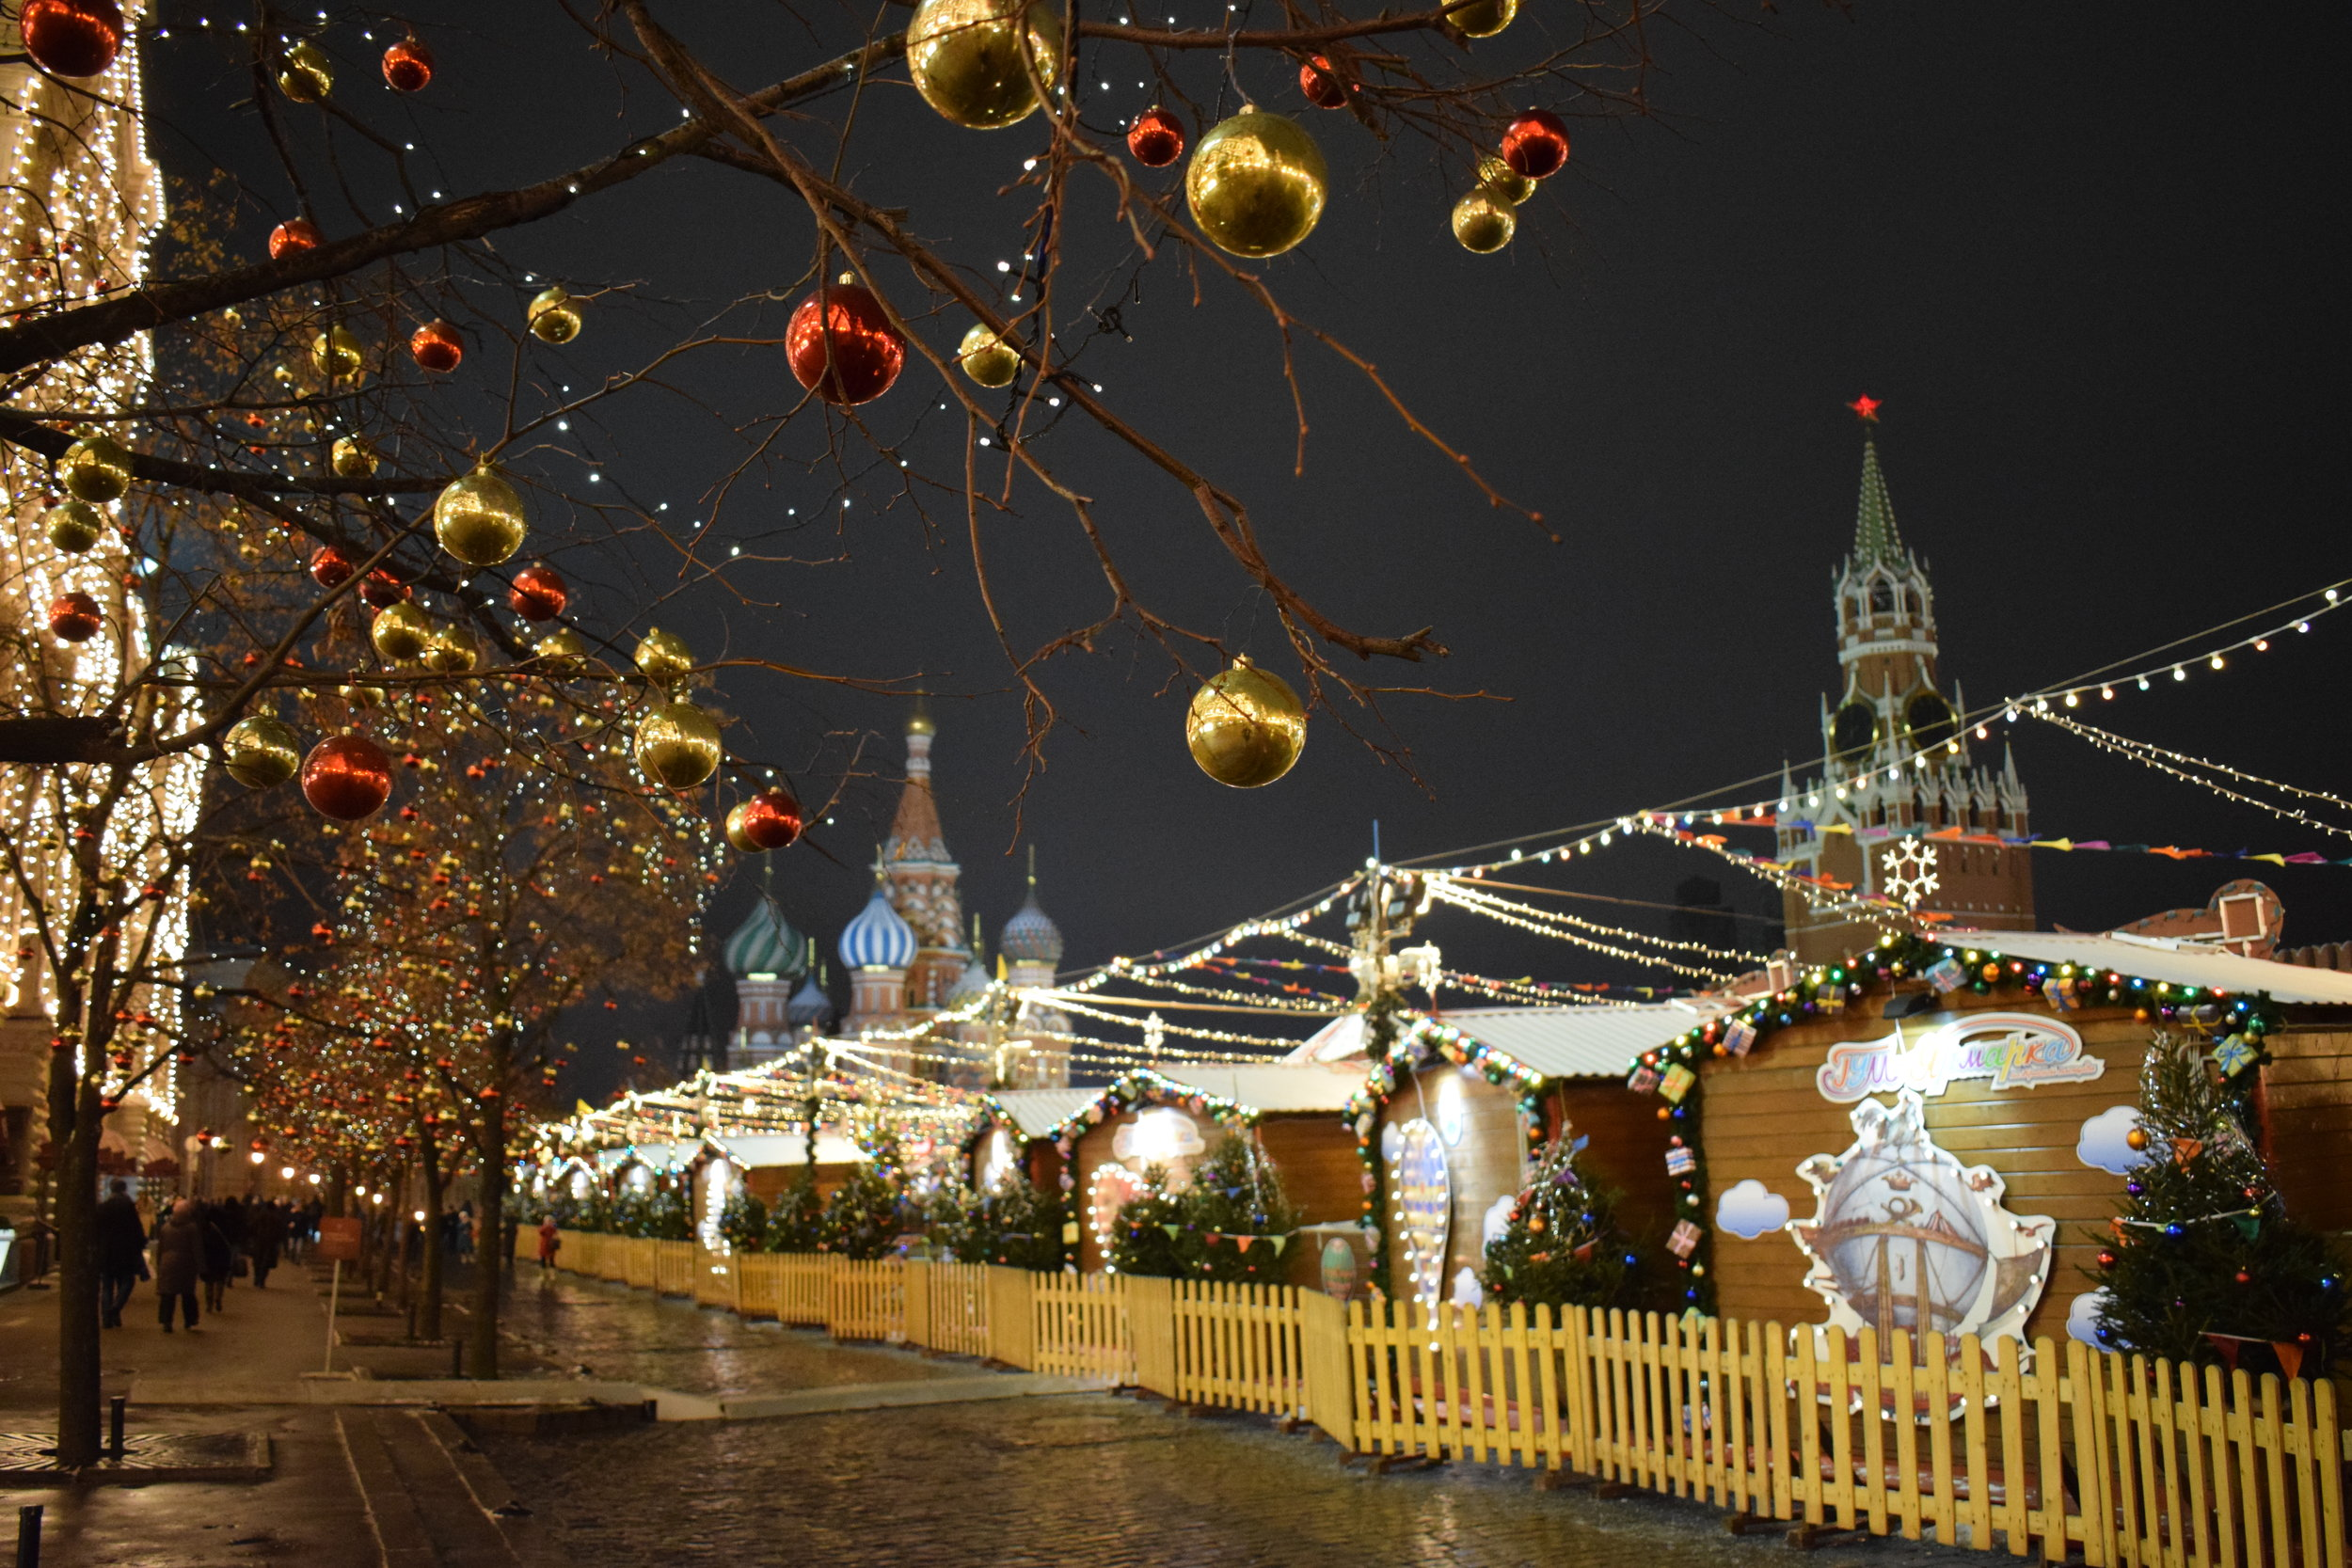 Red Square Christmas Market set against the backdrop of Saint Basil's Cathedral and the Kremlin.